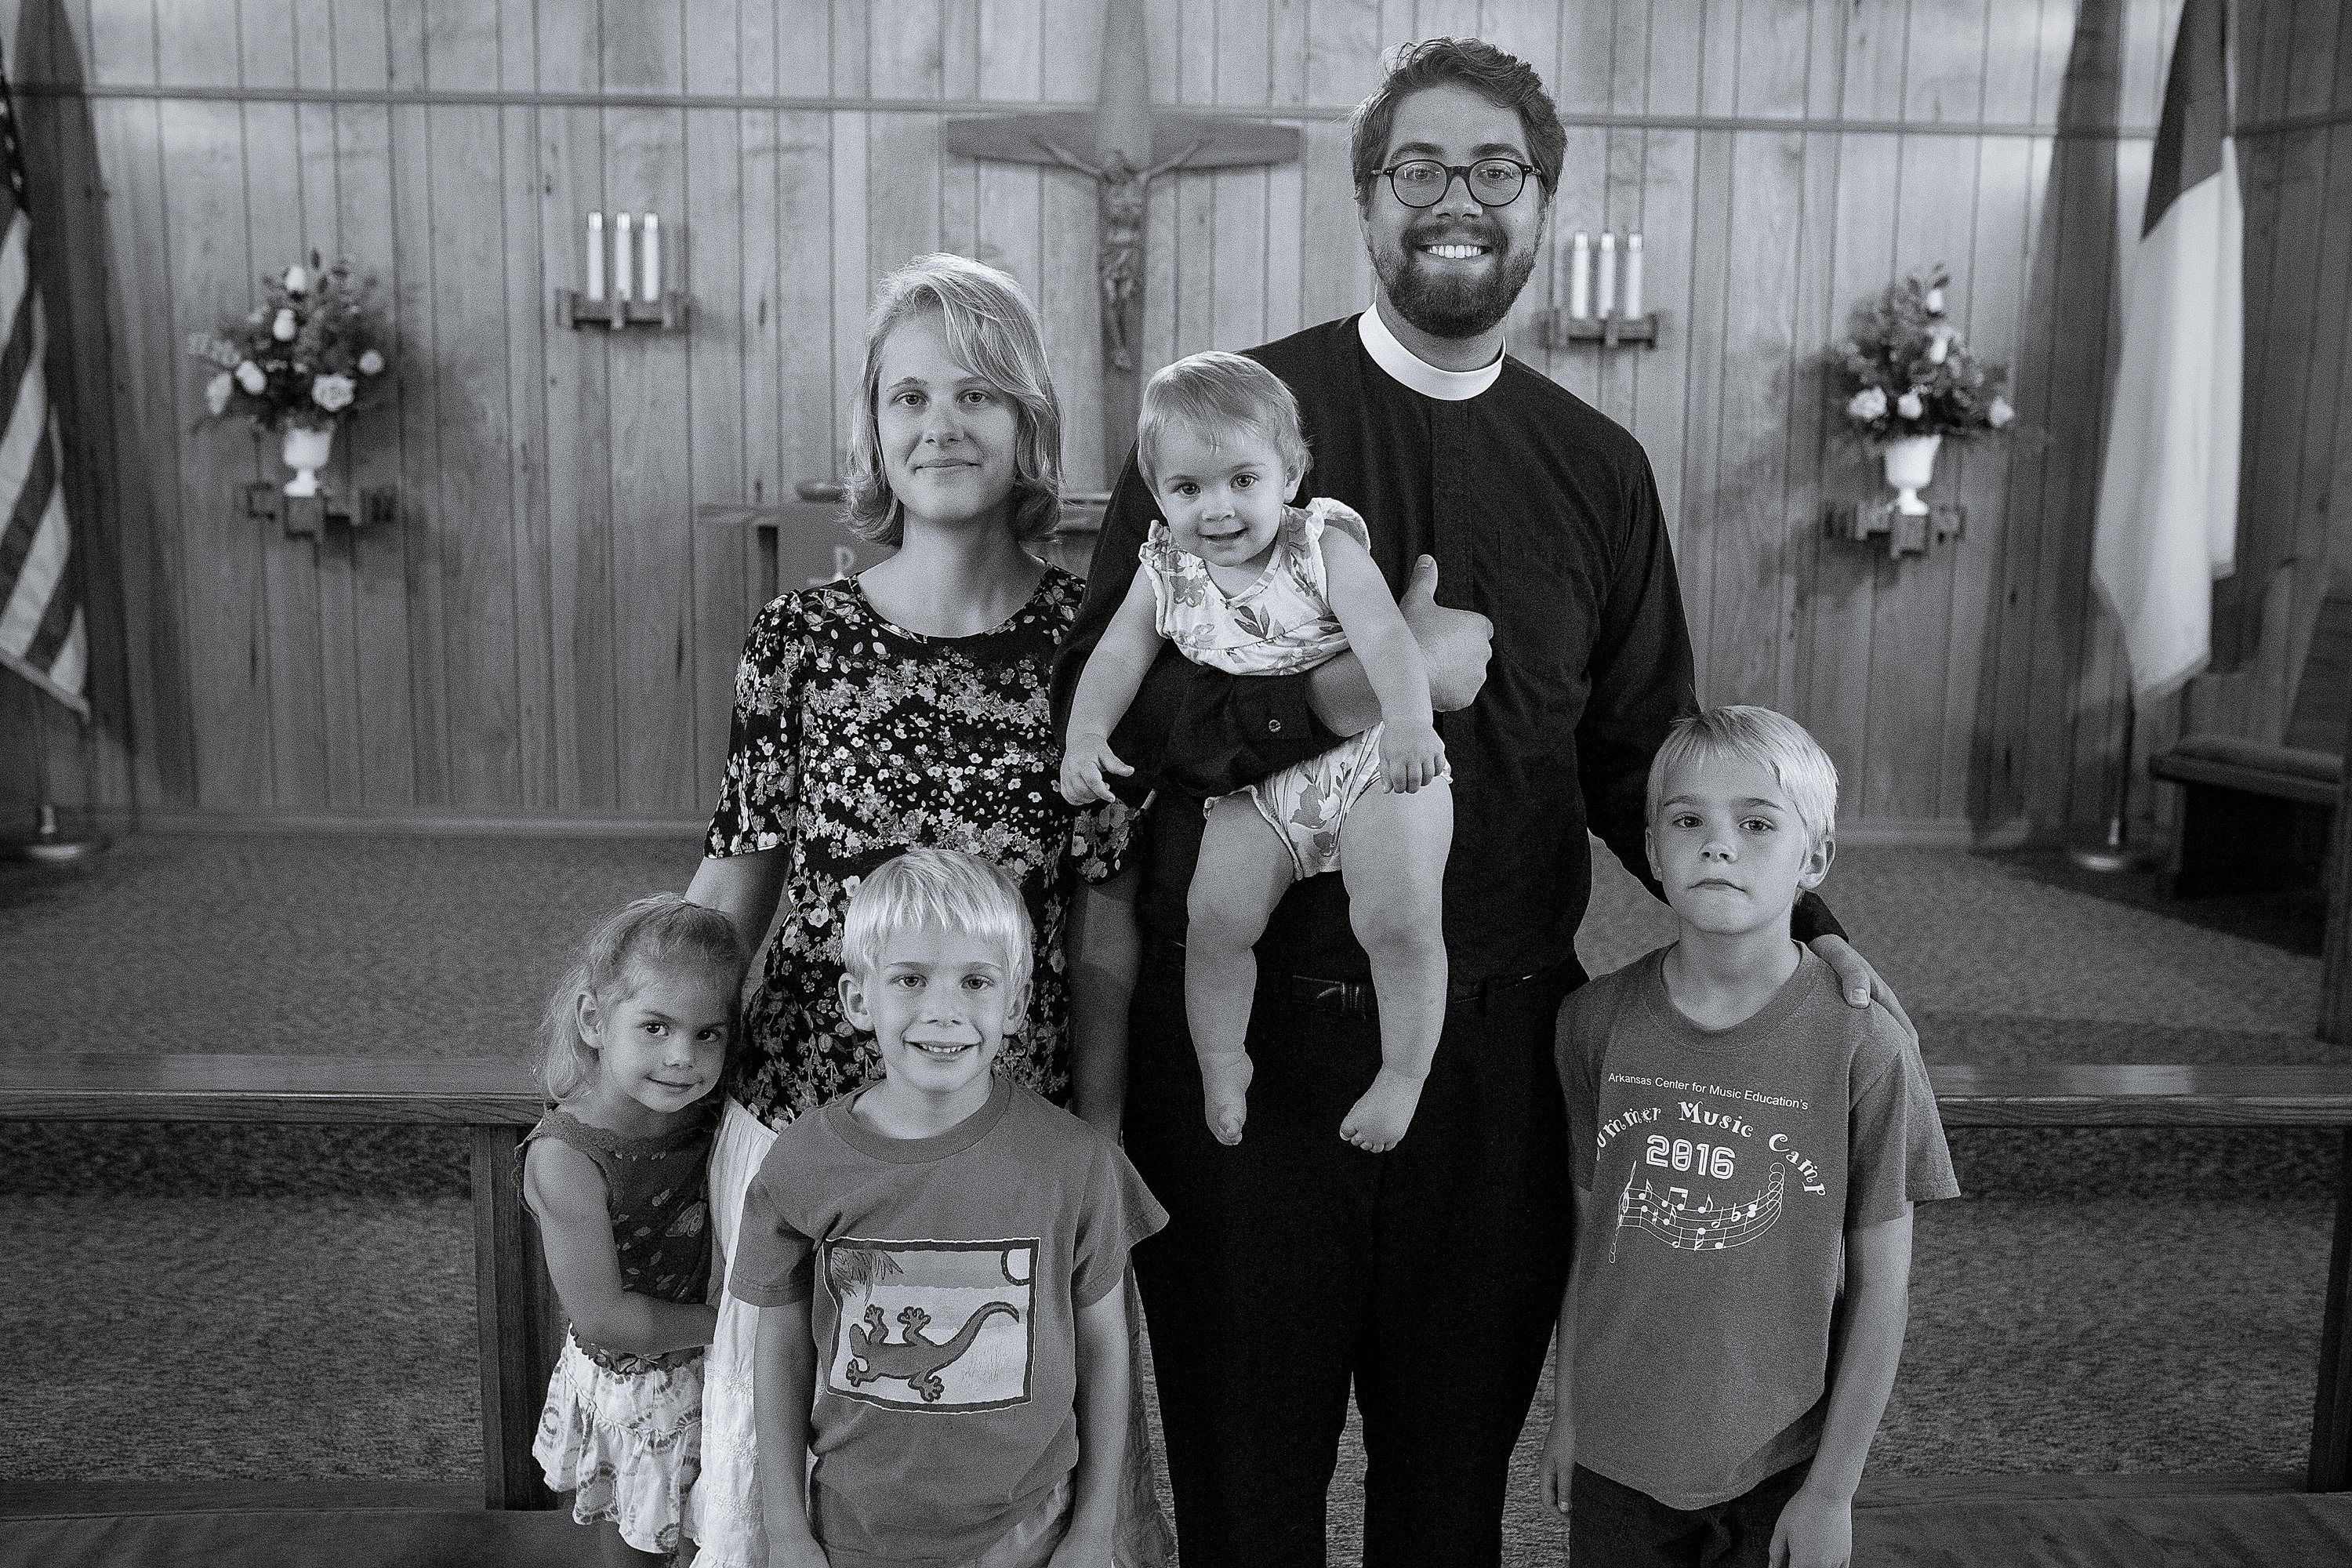 Pastor Schoaff and Family